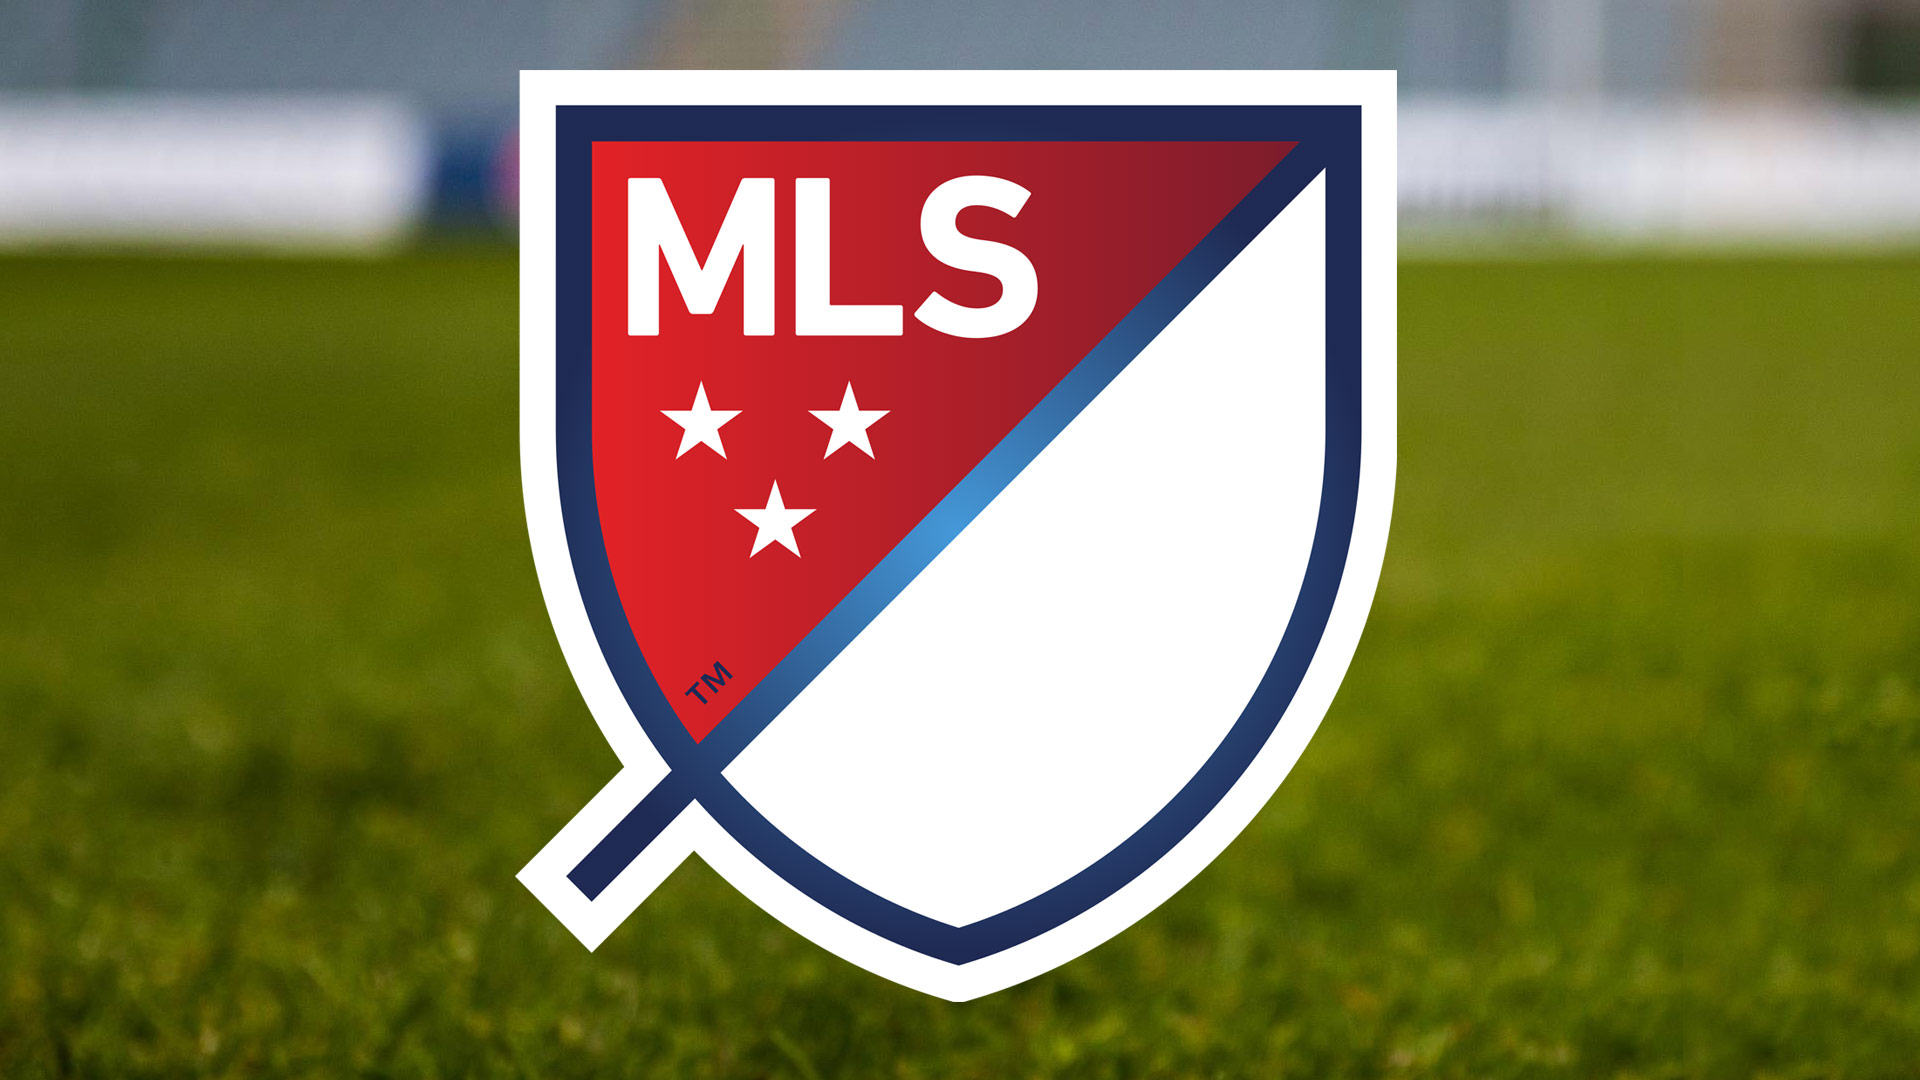 MLS Major League Soccer FC Tucson hero